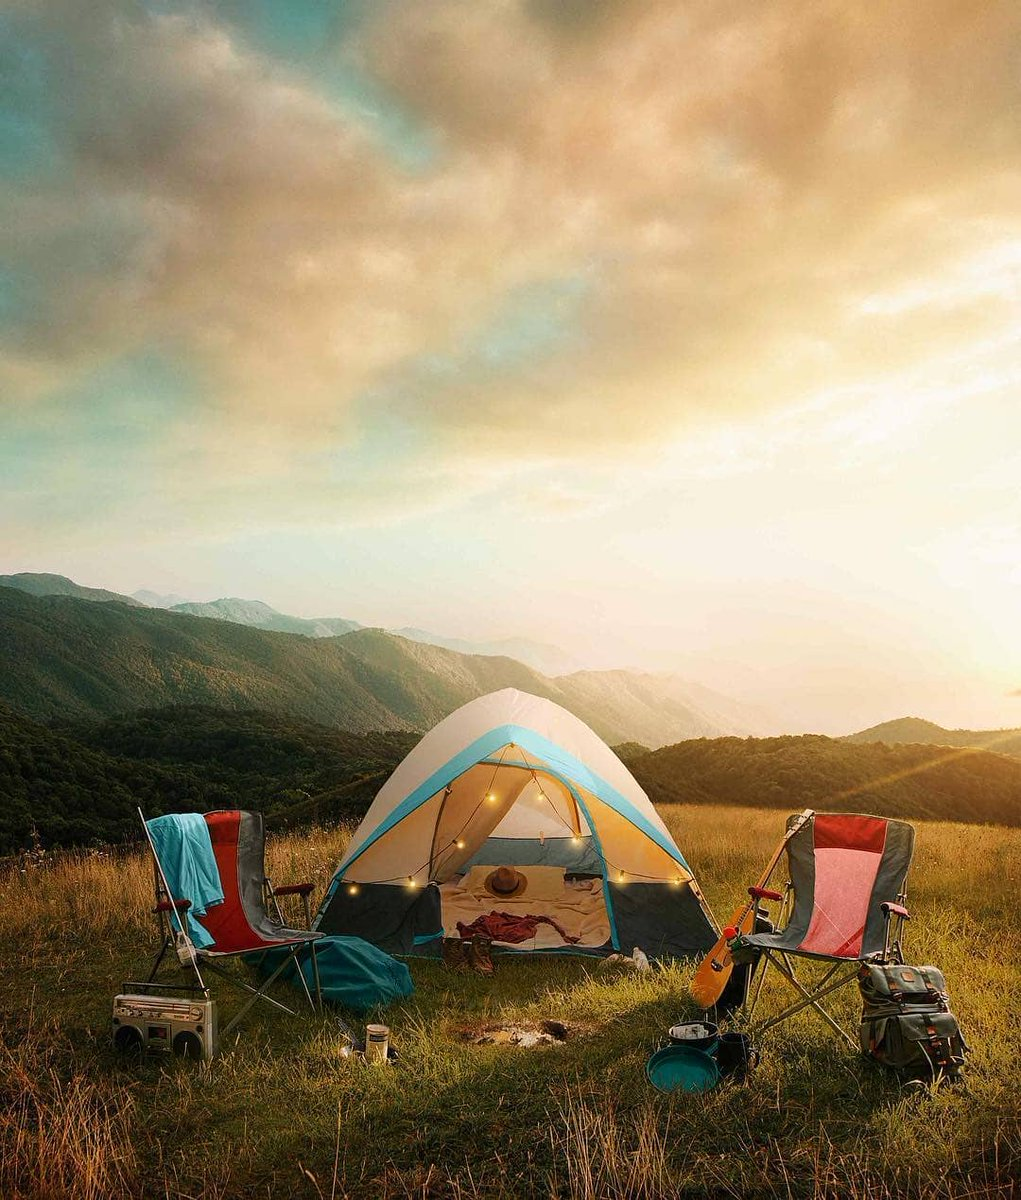 Disconnecting from the world. such a view in a tent, with good company. It can't get any better. 😍 Do you agree with us? 💏matttothemiller . 💥 Follow us @kingcamp  for more beautiful camping contents 👌 . . . . . . . #camping #hiking #adventure  #tent #tentcamping #tents https://t.co/aQQvCgYi0Y